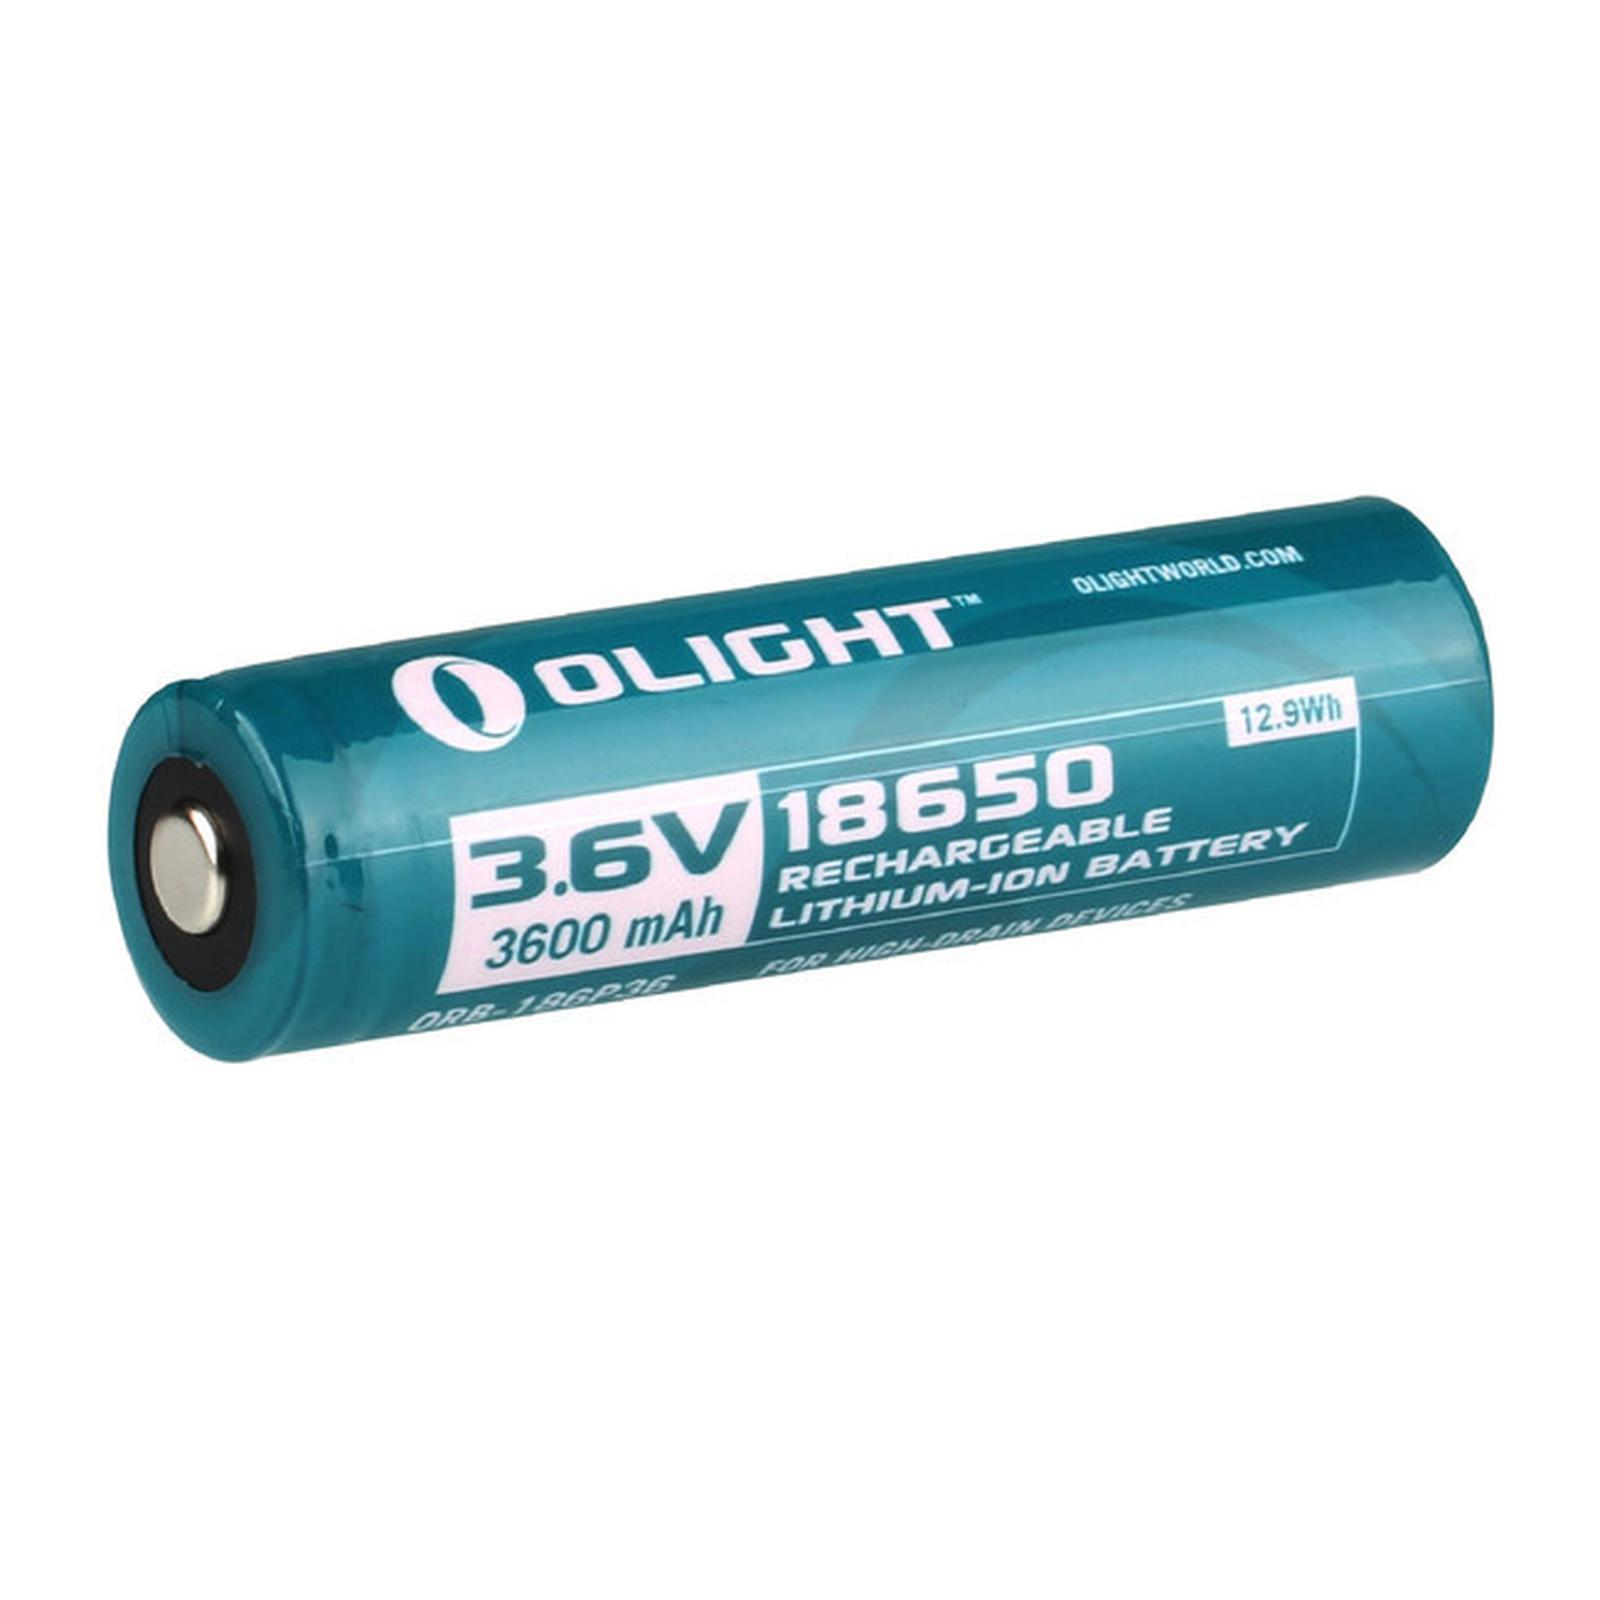 АККУМУЛЯТОР LI-ION OLIGHT ORB-186P36 18650 3,6 В. 3600 MAH от Panasonic